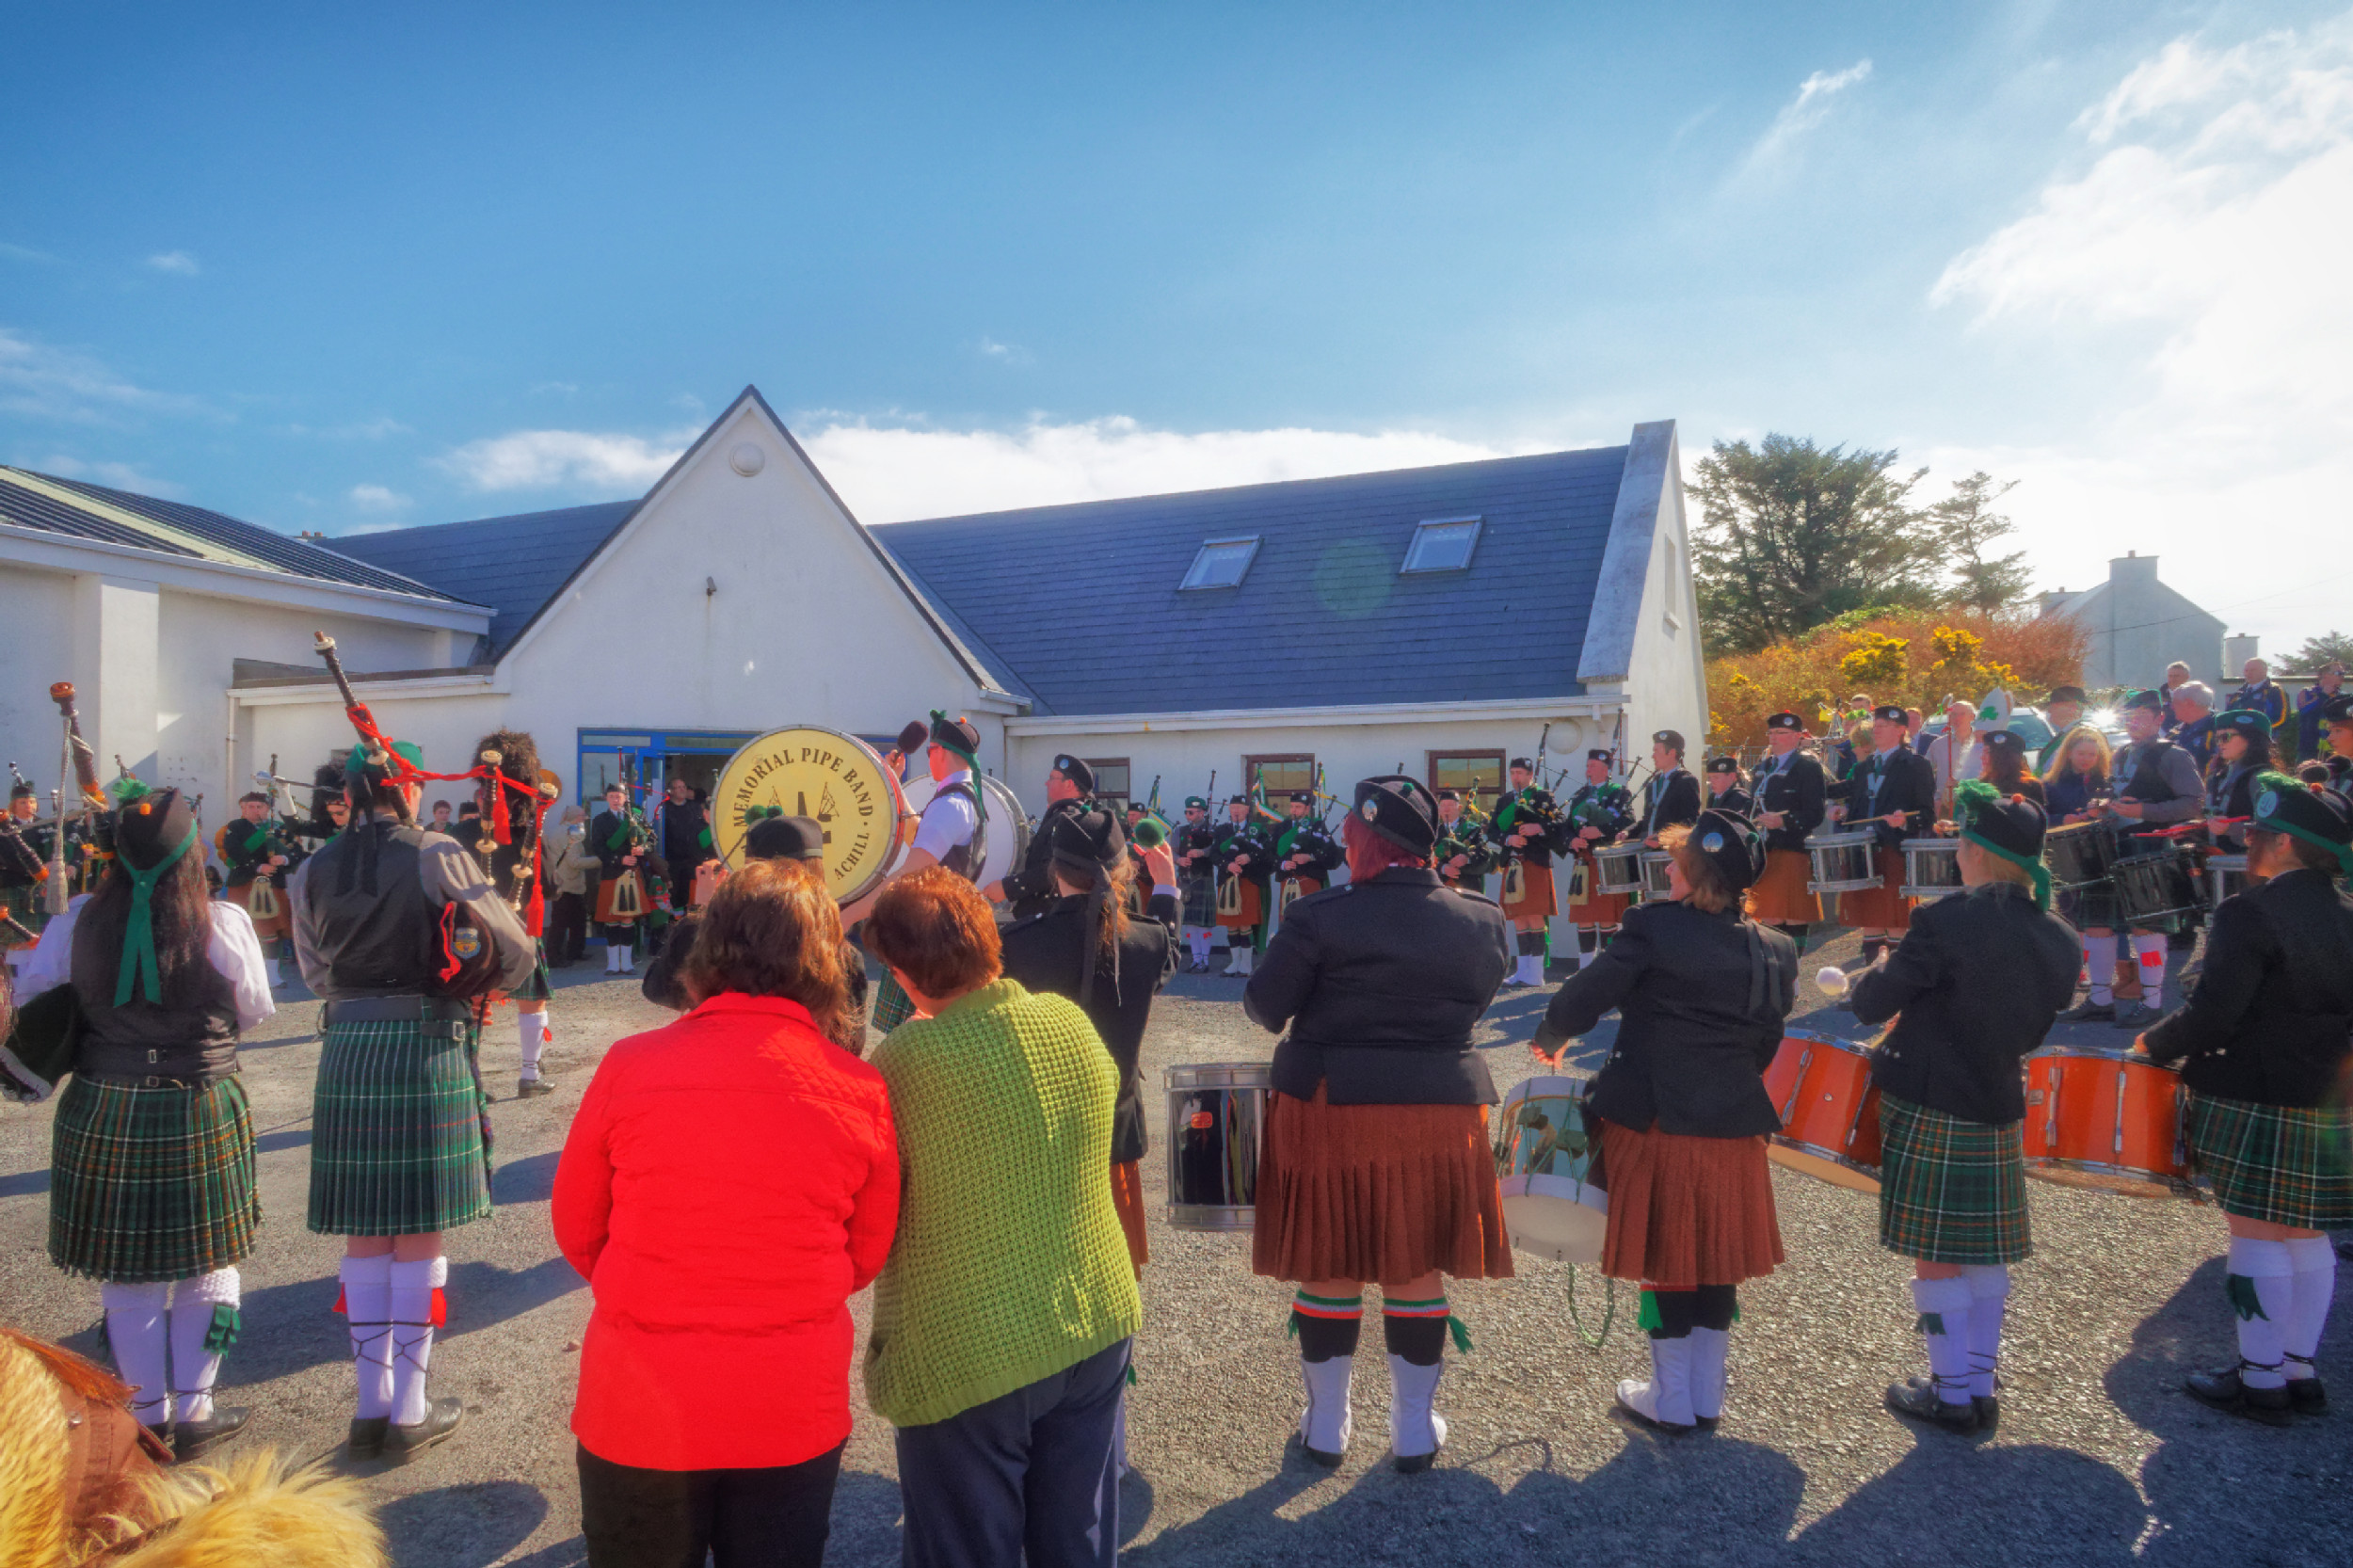 20160320132848-ie-achill-sound_parade-_DxO_13in_DxO96